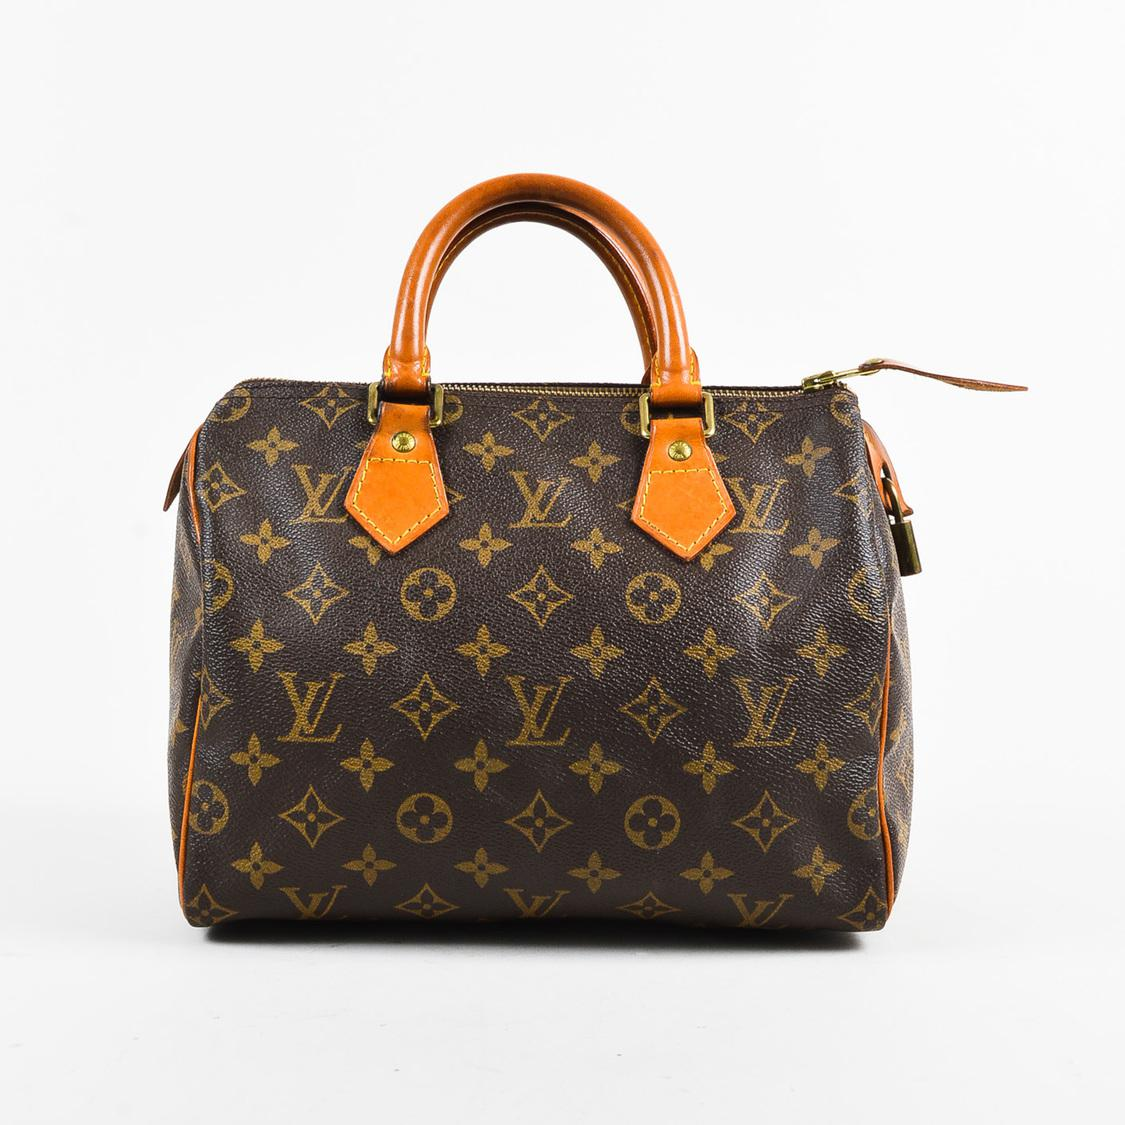 368d43f37f89 Gallery. Previously sold at  Luxury Garage Sale · Women s Coach Rogue  Women s Louis Vuitton Totally Pm ...